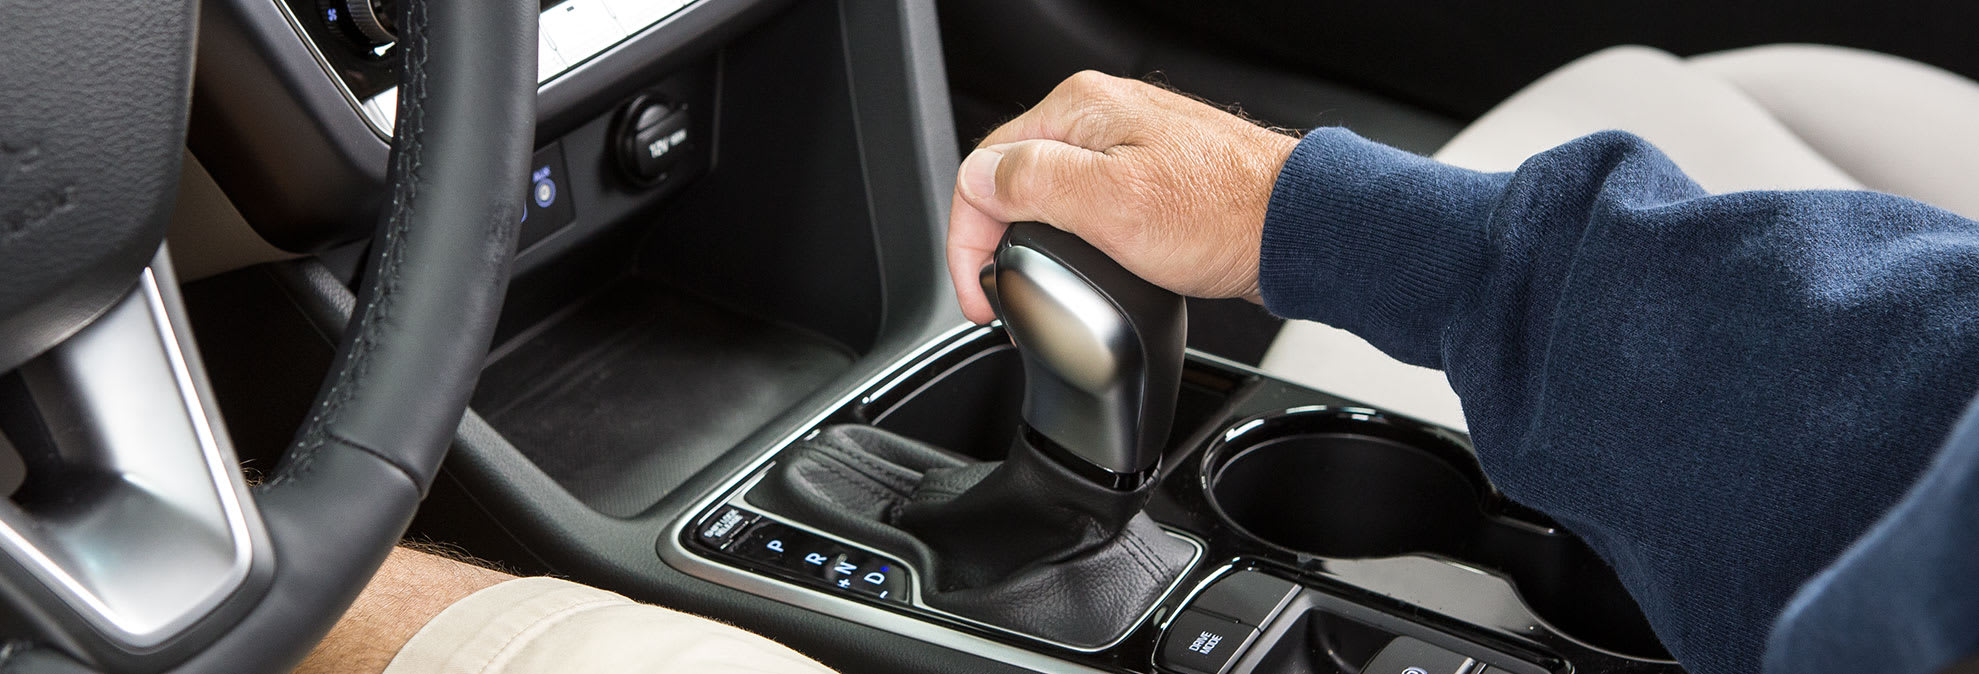 6 Things to Know About Your Car's Transmission - Consumer